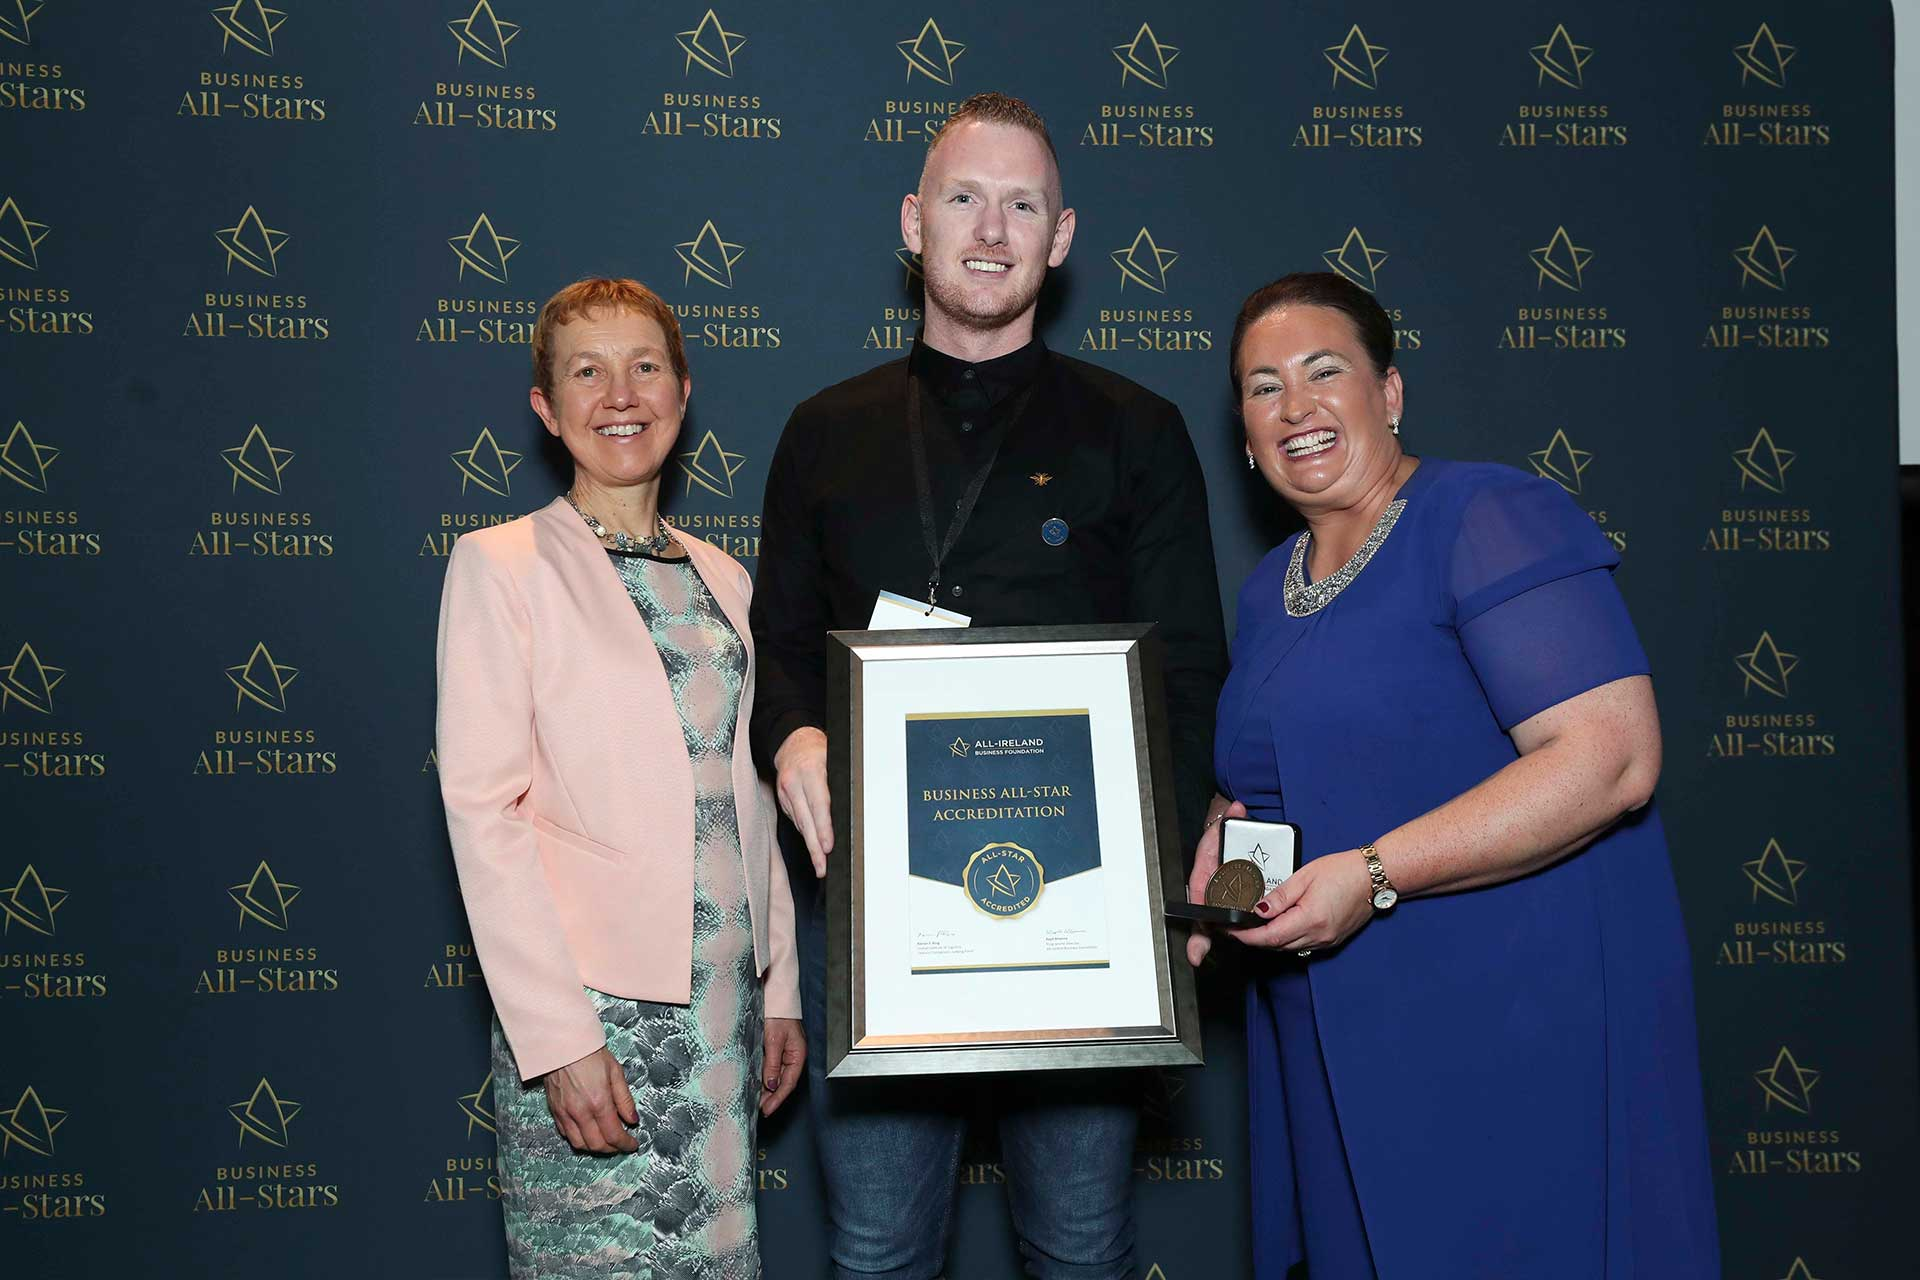 David Roche - Roche Injury Clinic receiving Business All-Star Thought Leader Accreditation at Croke Park from Dr Briga Hynes, Kemmy Business School, University of Limerick and Elaine Carroll CEO, All-Ireland Business Foundation.